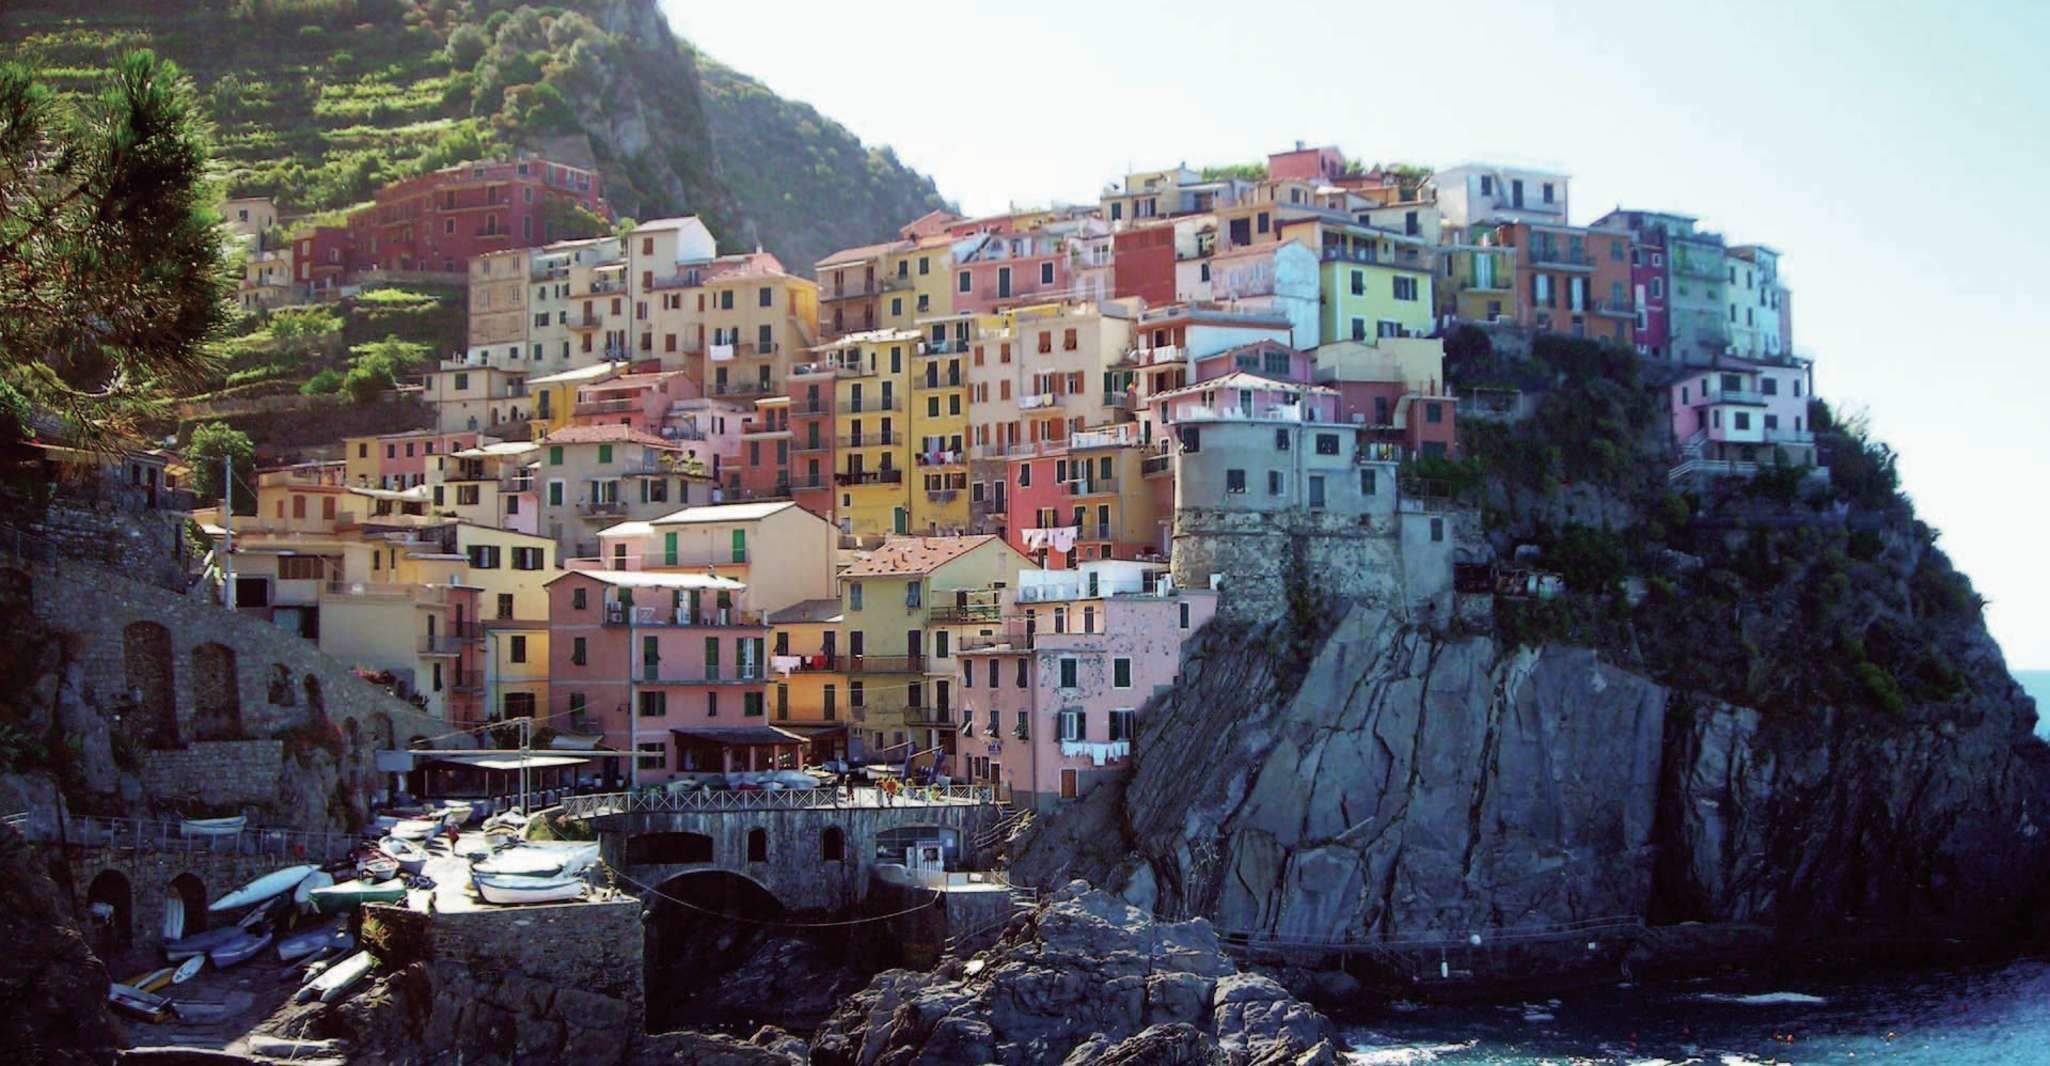 Full-Day Cinque Terre Excursion from Florence